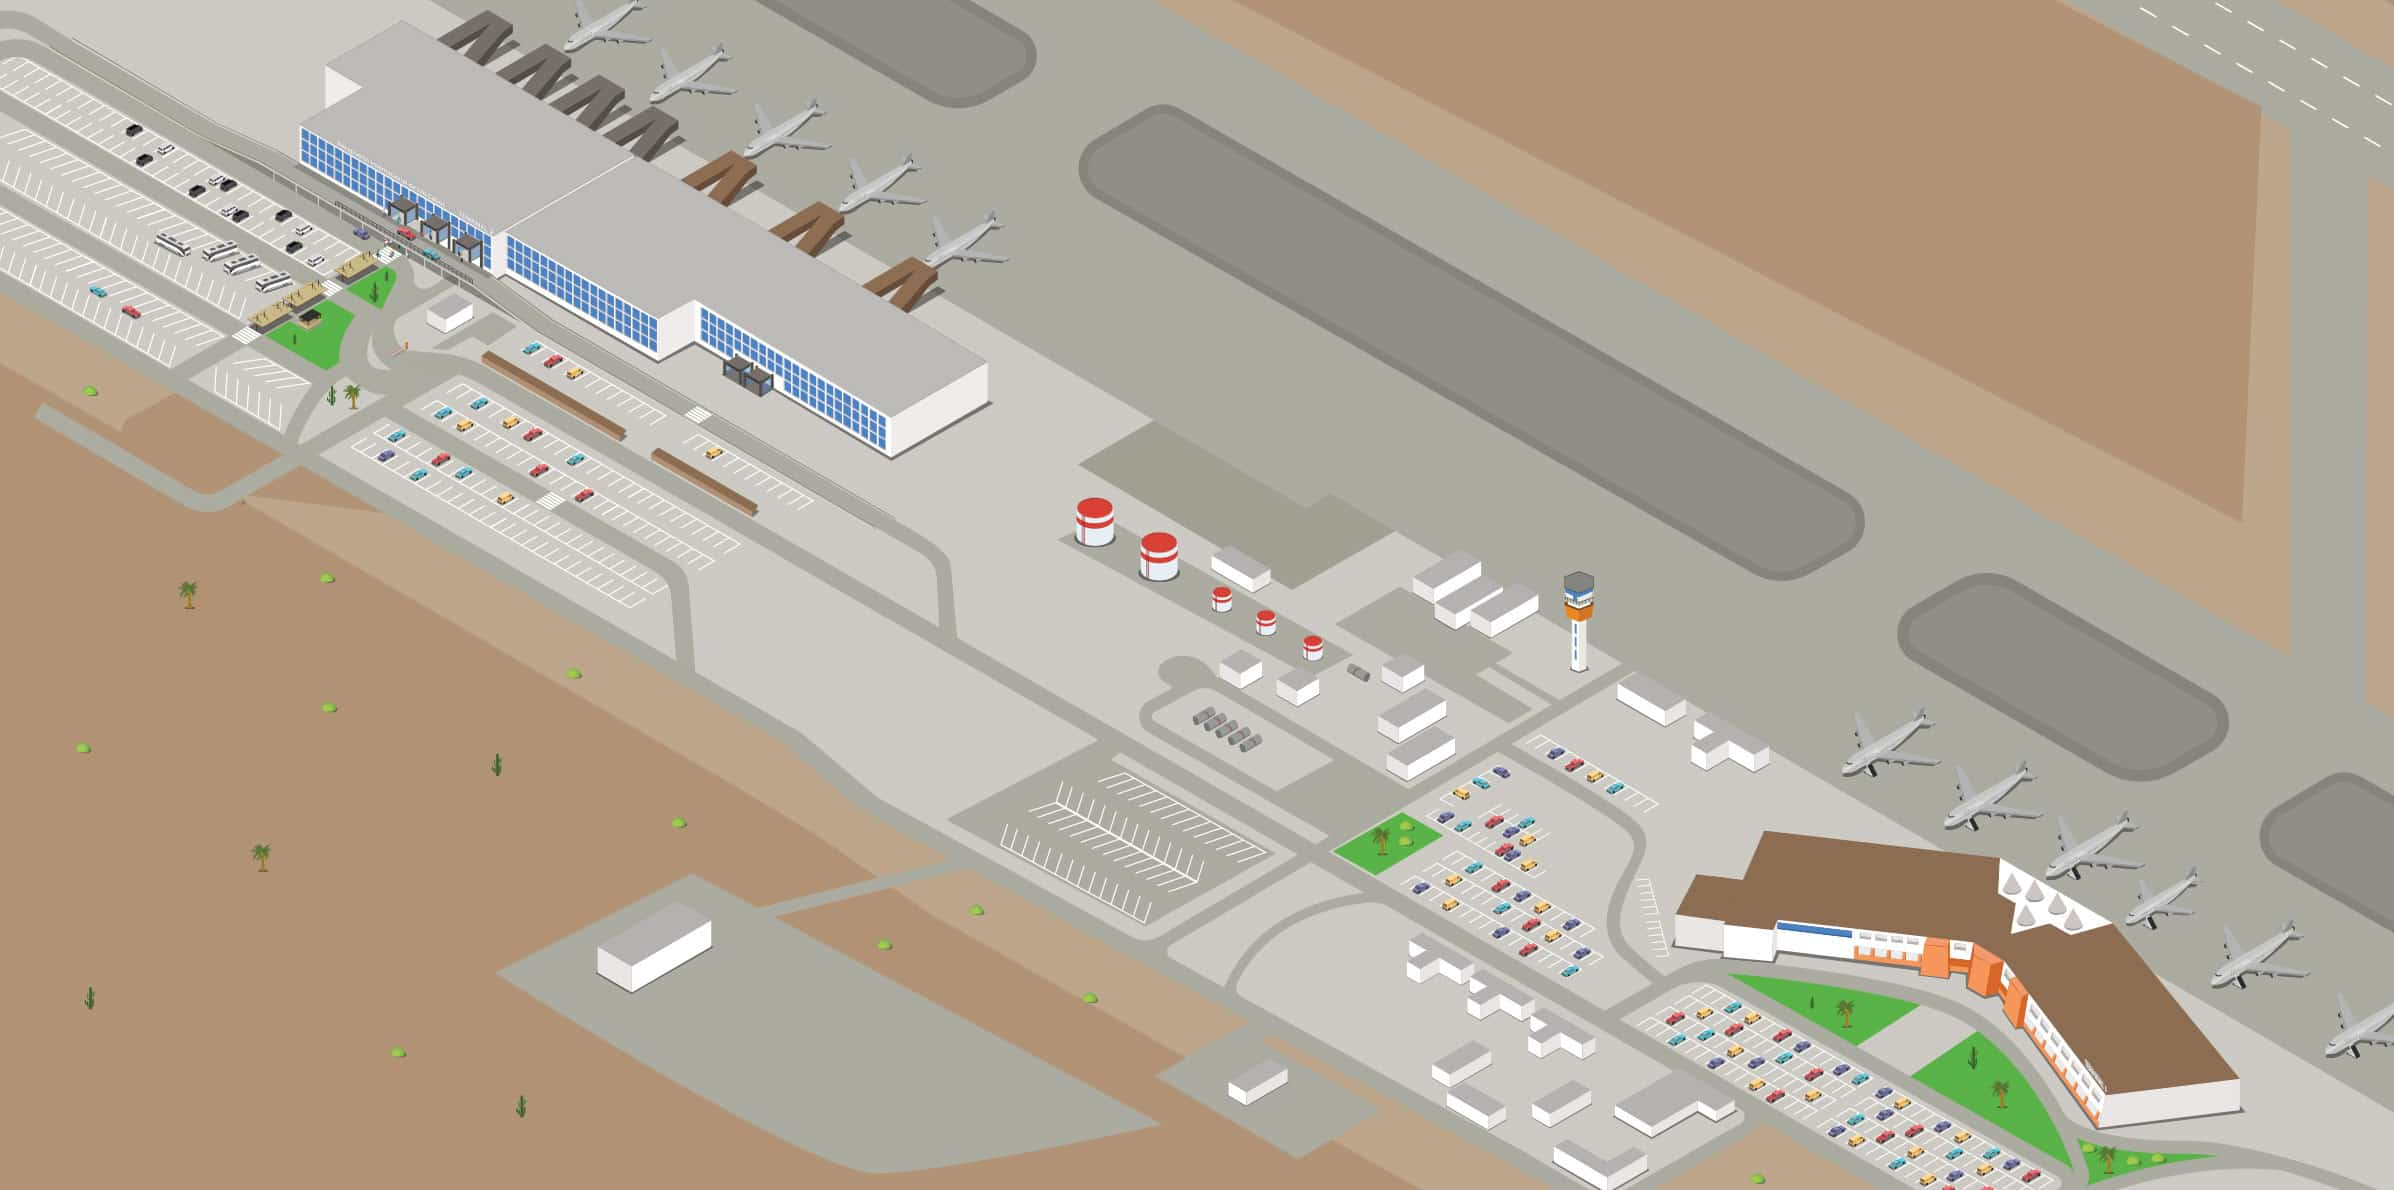 Cabo Airport Maps | SJD International Airport Maps on cabo san lucas airport map, sna airport map, monterrey airport map, el paso airport map, disneyland airport map, delaware airport map, reading airport map, sjc airport map, lindbergh airport map, hayward airport map, chennai international airport map, oakland airport map, burbank airport map, salt lake city airport map, akron airport map, toncontin airport map, costa rica map, hollywood airport map, lake tahoe airport map, merida airport map,